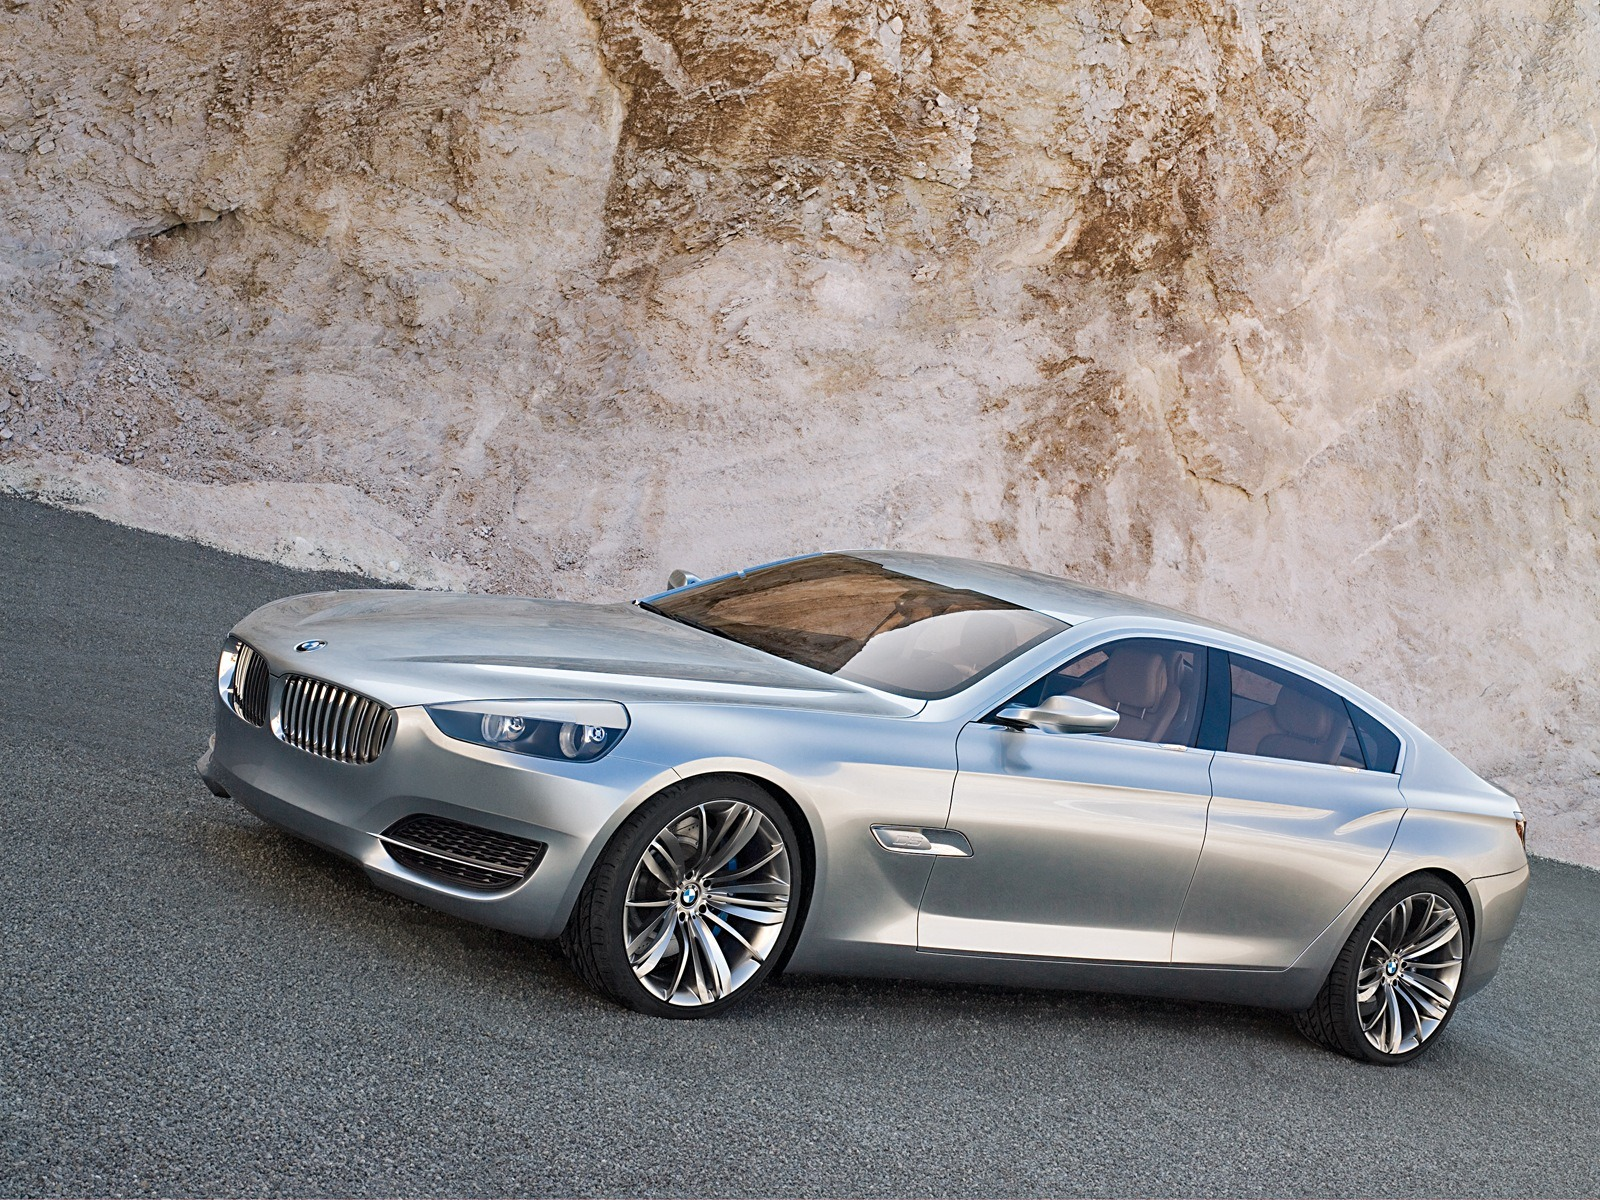 Bmw Concept Cs Wallpaper Bmw Cars Wallpapers In Jpg Format For Free